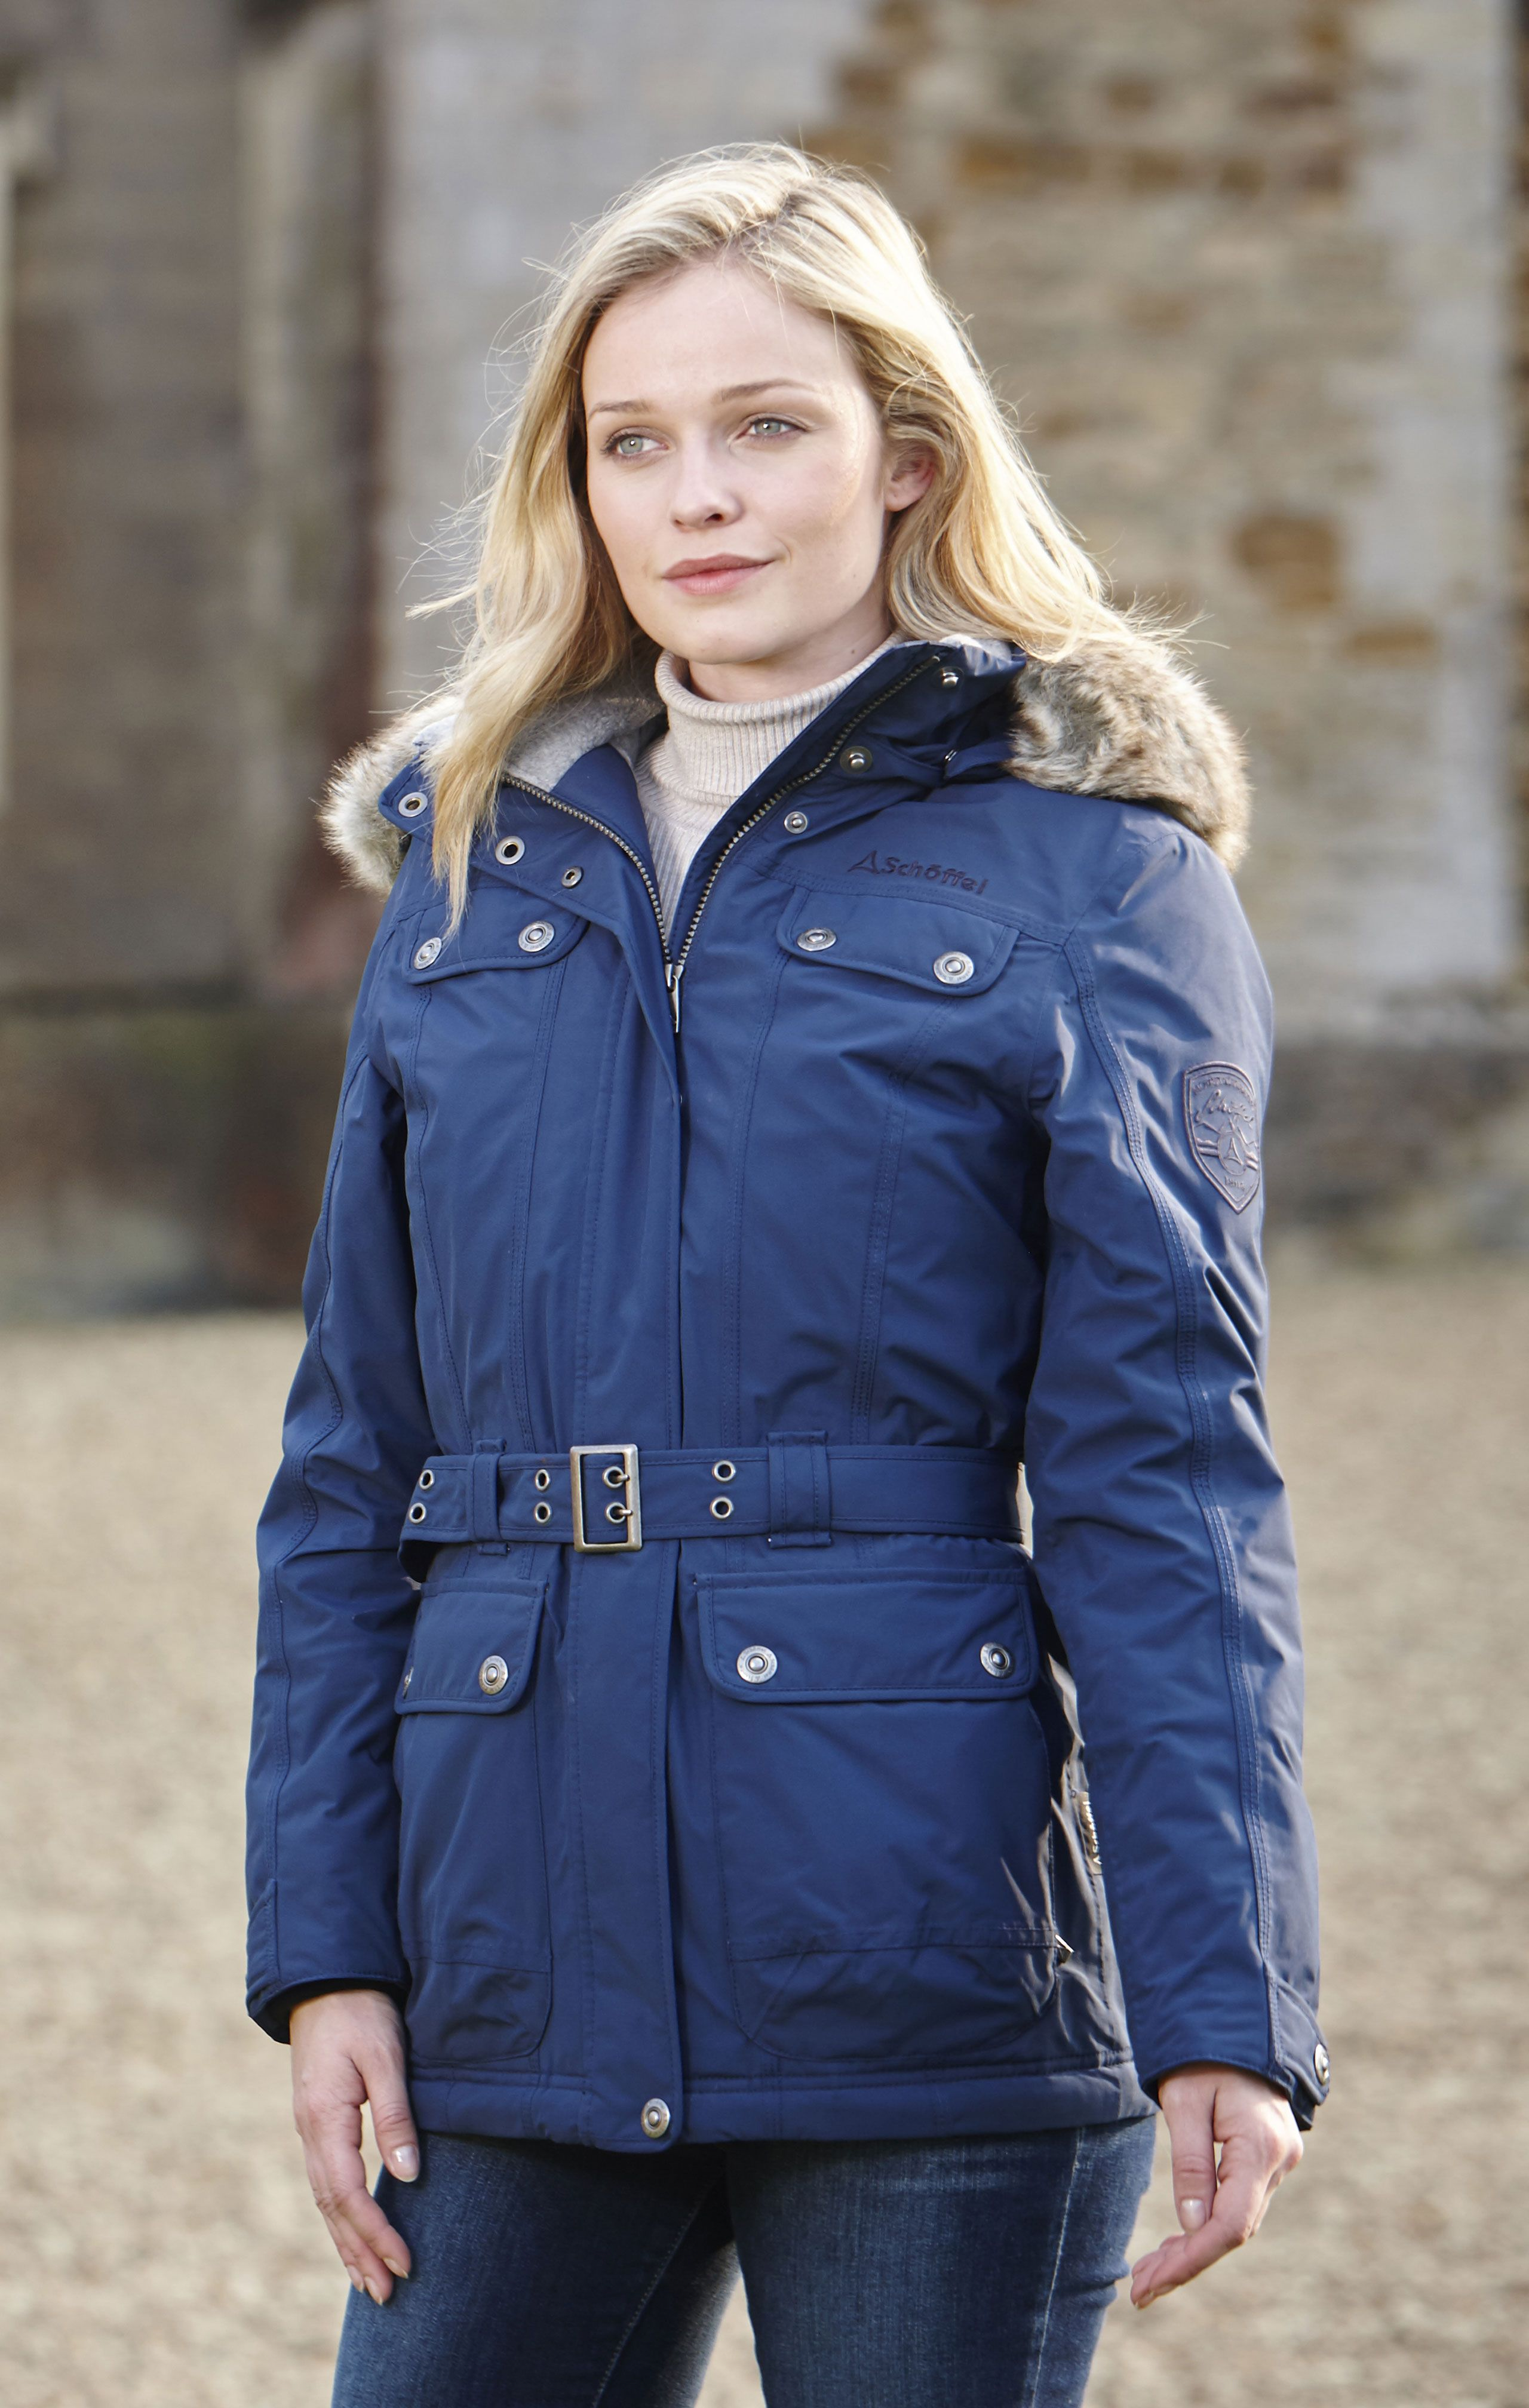 Ladies Schoffel Tabea coat - This new beautifully stylish coat is perfect for cold autumn days